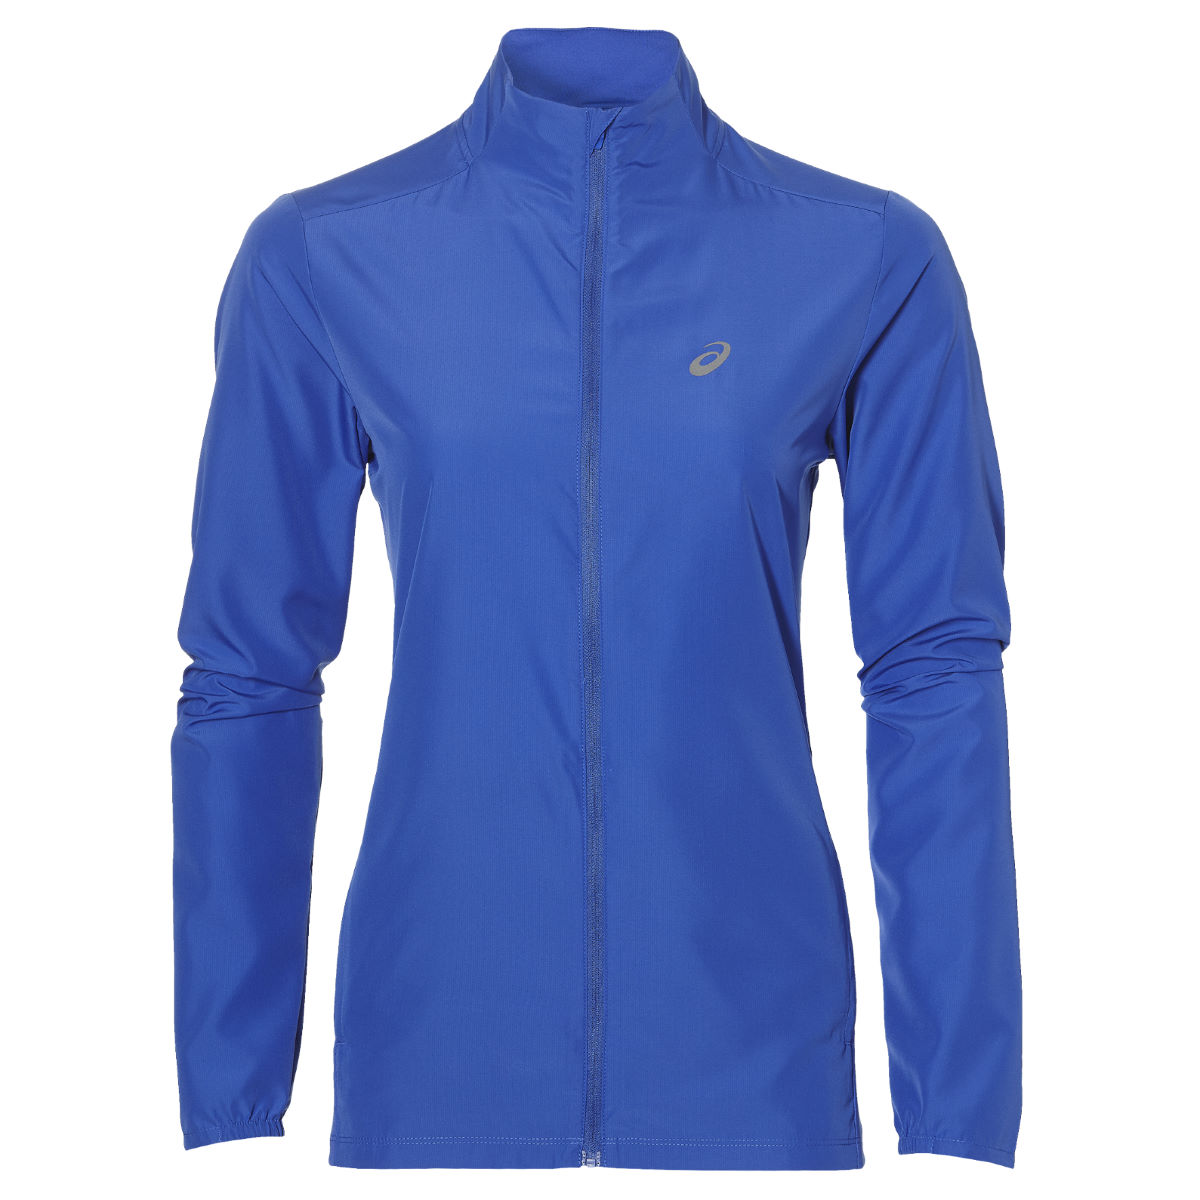 Veste Femme Asics - XL 8091 Blue Purple Vestes de running coupe-vent